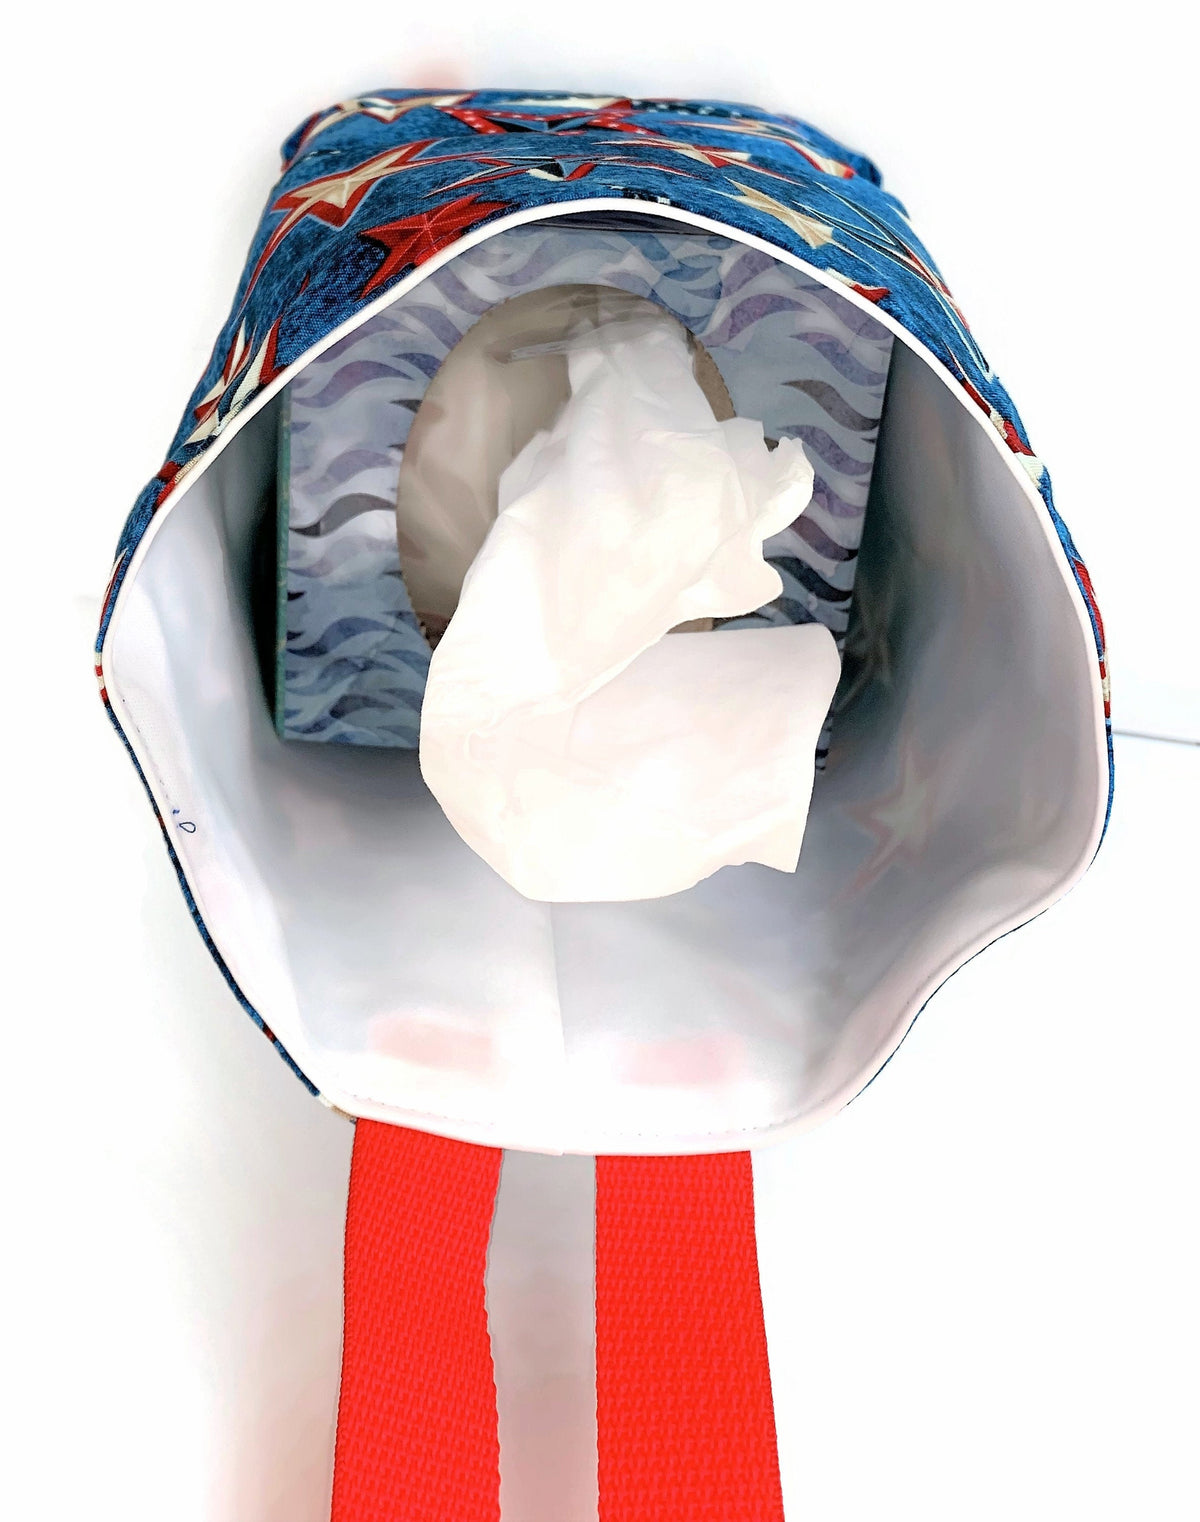 Red White Blue Car Trash Bag - Auto Accessory - Wipe Clean Garbage Bag for Cars - Soft Bag